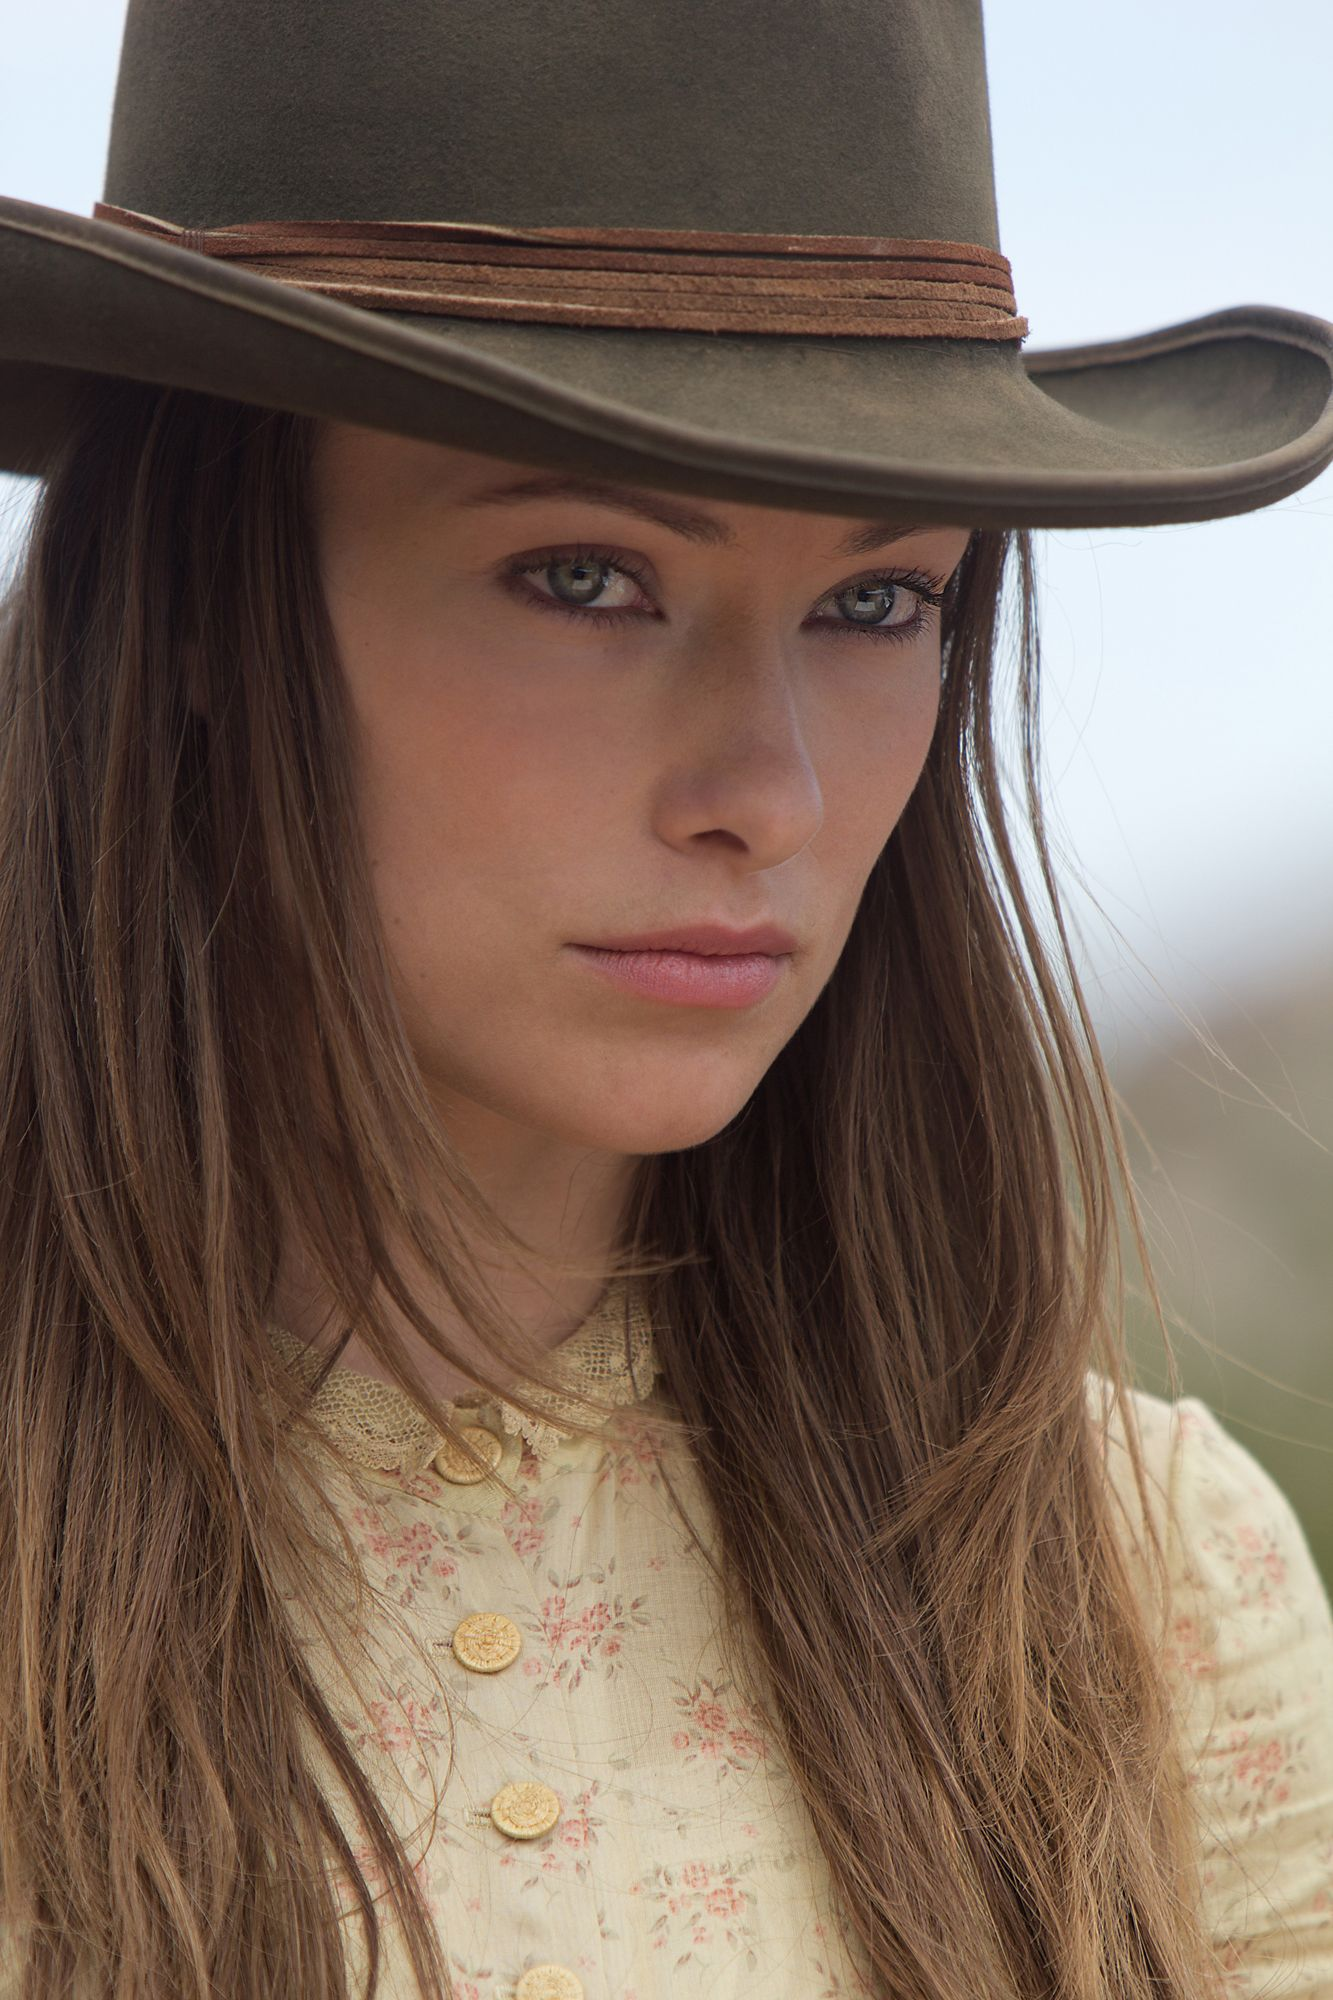 Olivia Wilde Profile And New Pictures 2013: COWBOYS & ALIENS Movie Images Daniel Craig Harrison Ford